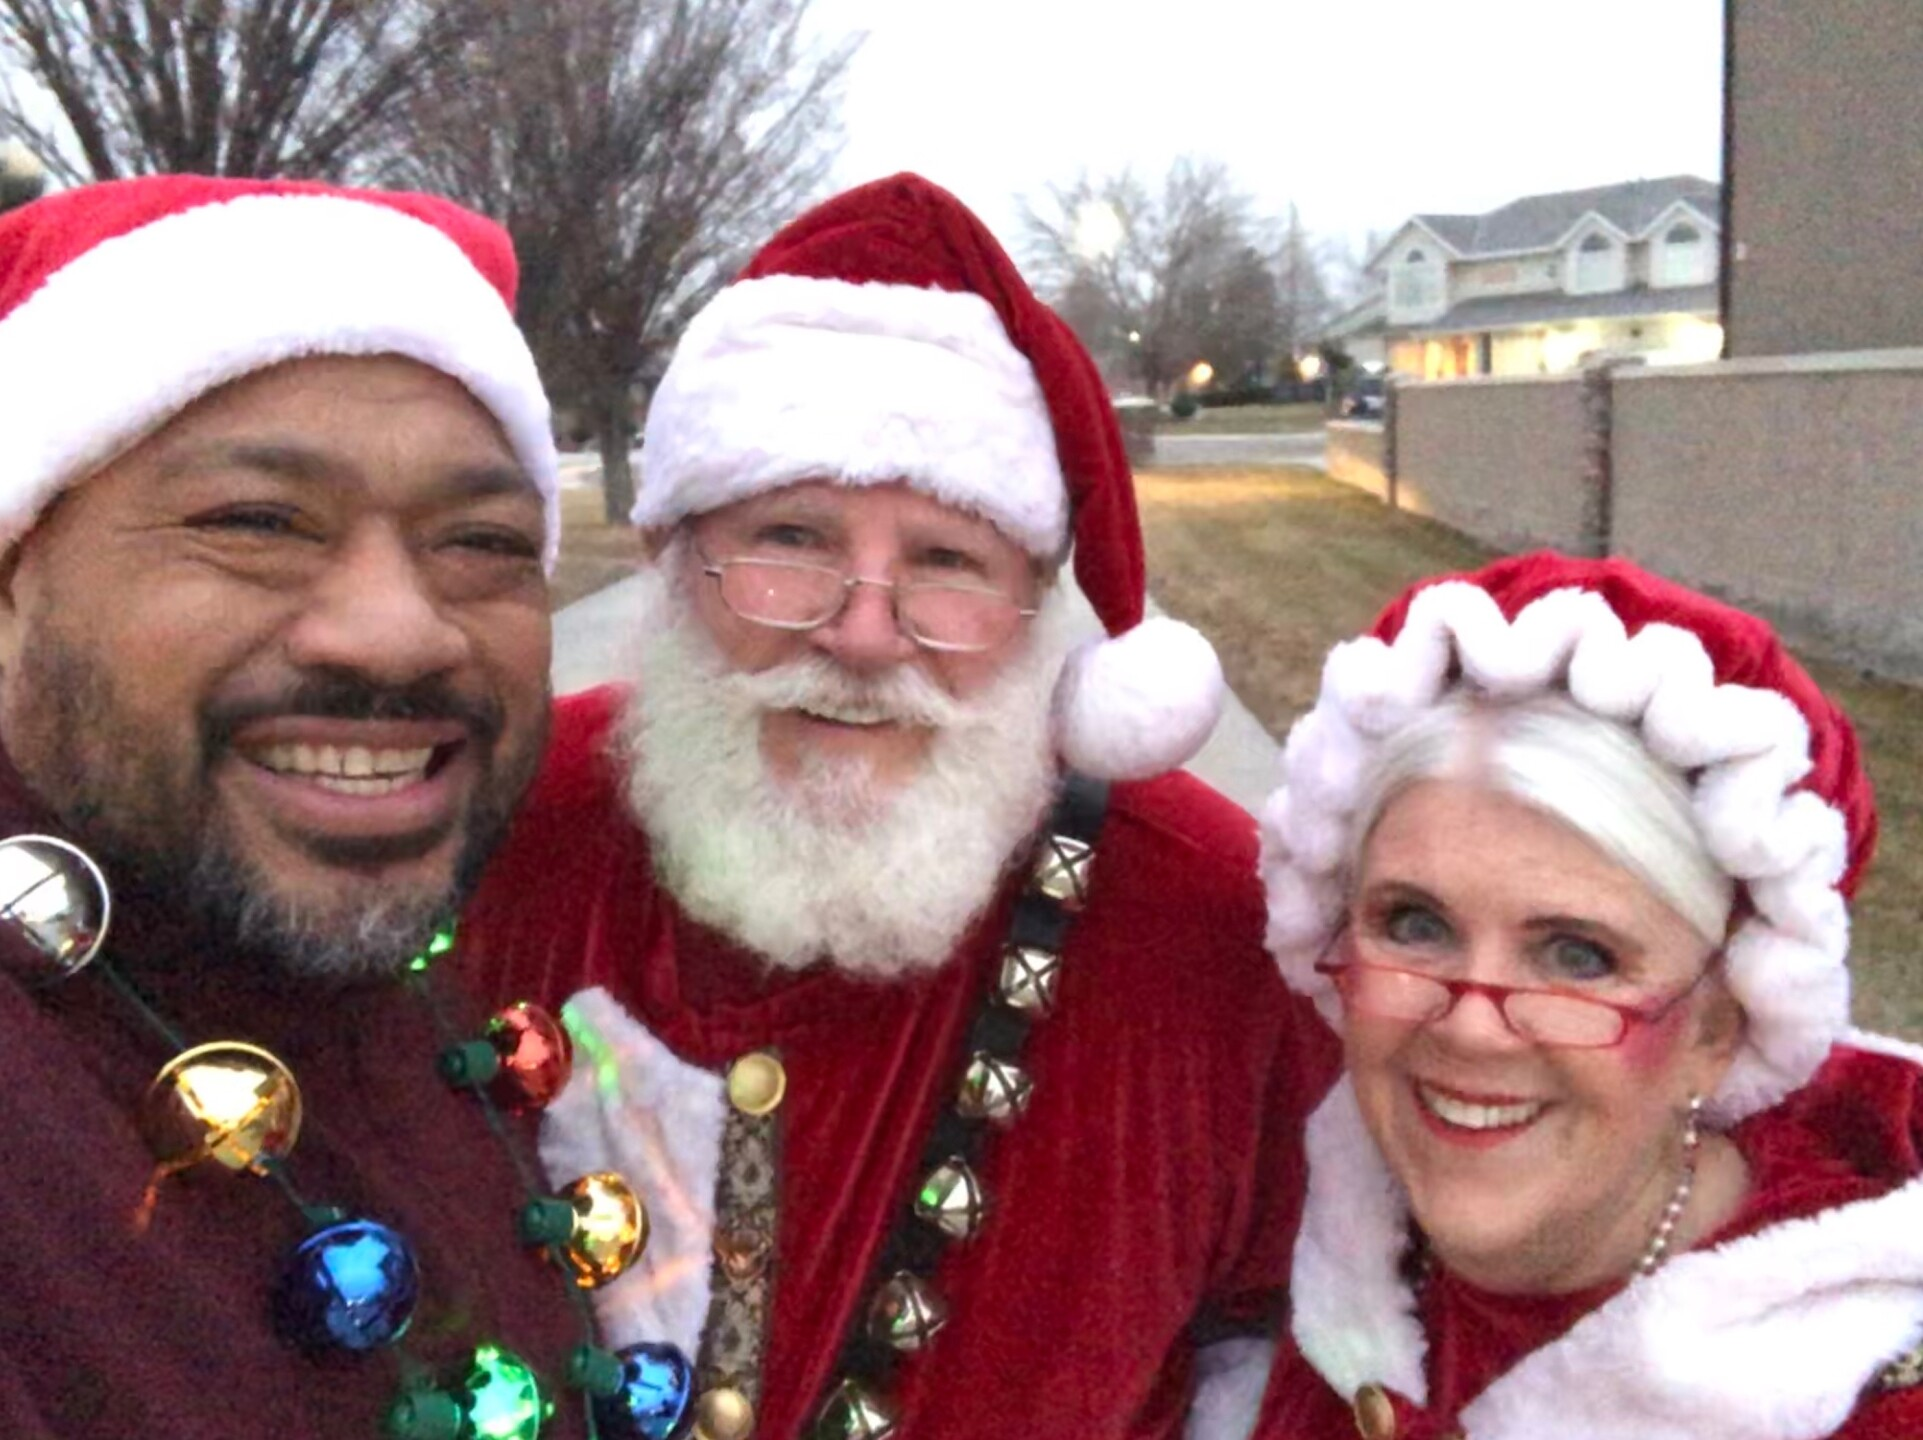 Photos: Big Budah's blog: New Year, new goals and time withfamily